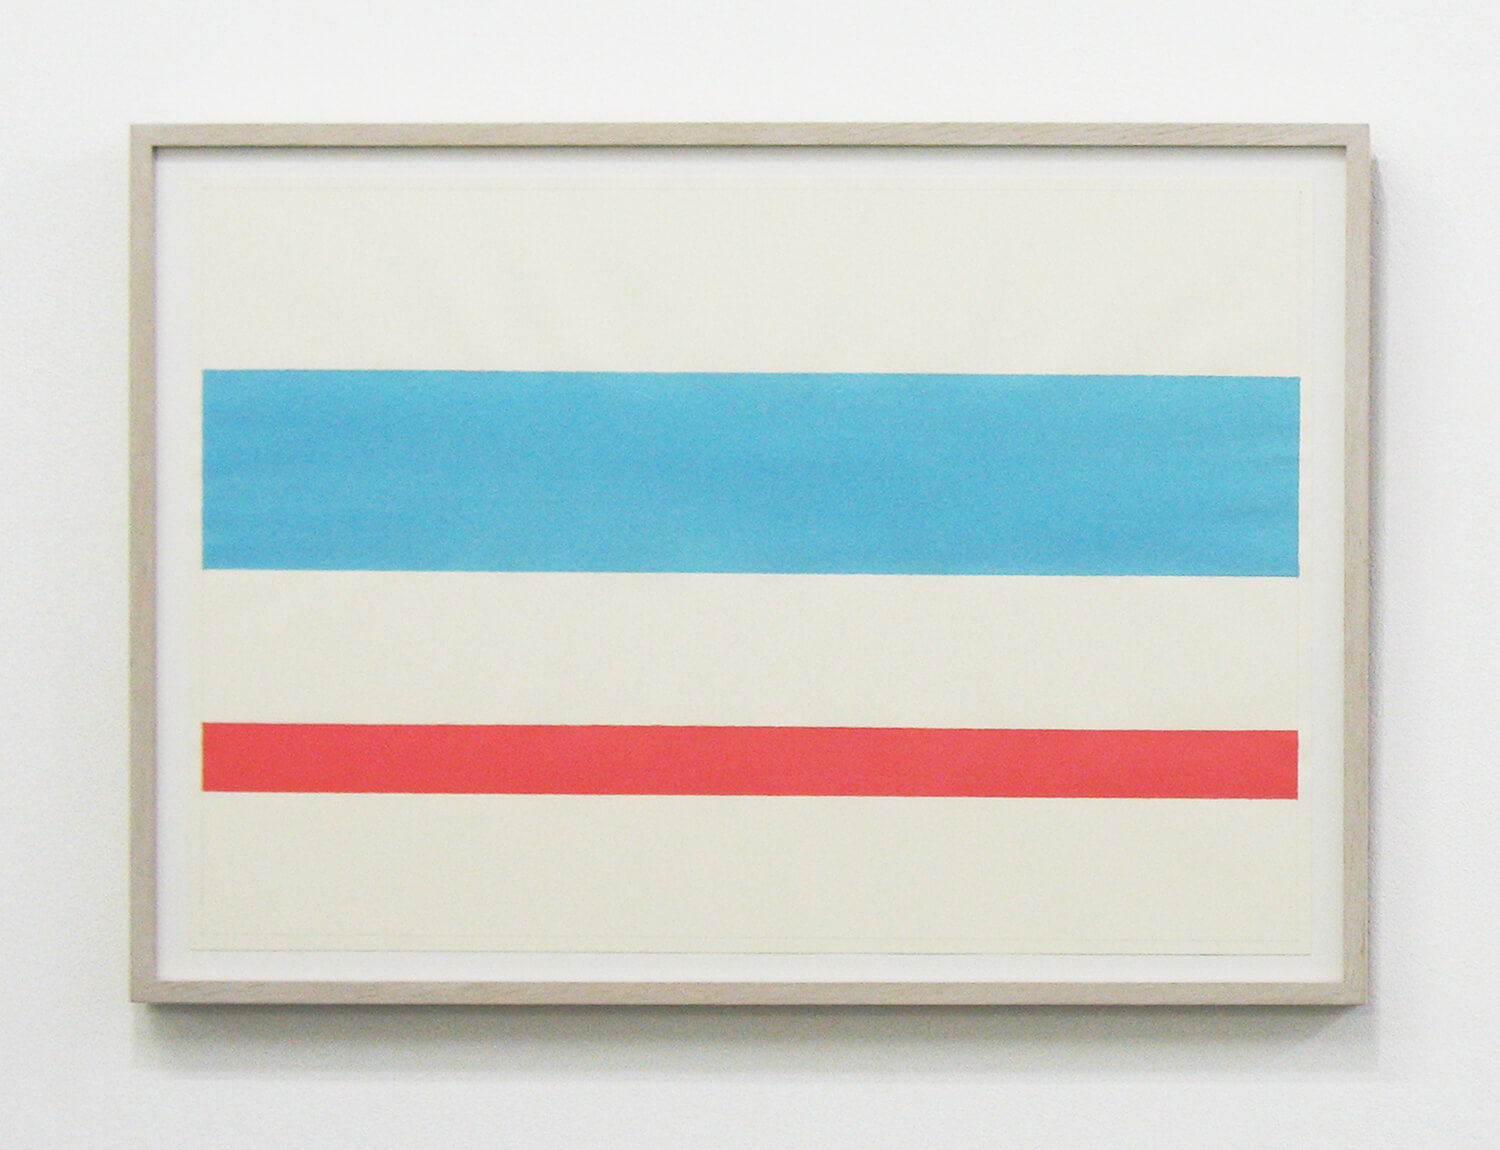 Text No. 886 / acrylic, ink on paper, 548 x 375 mm, 2011